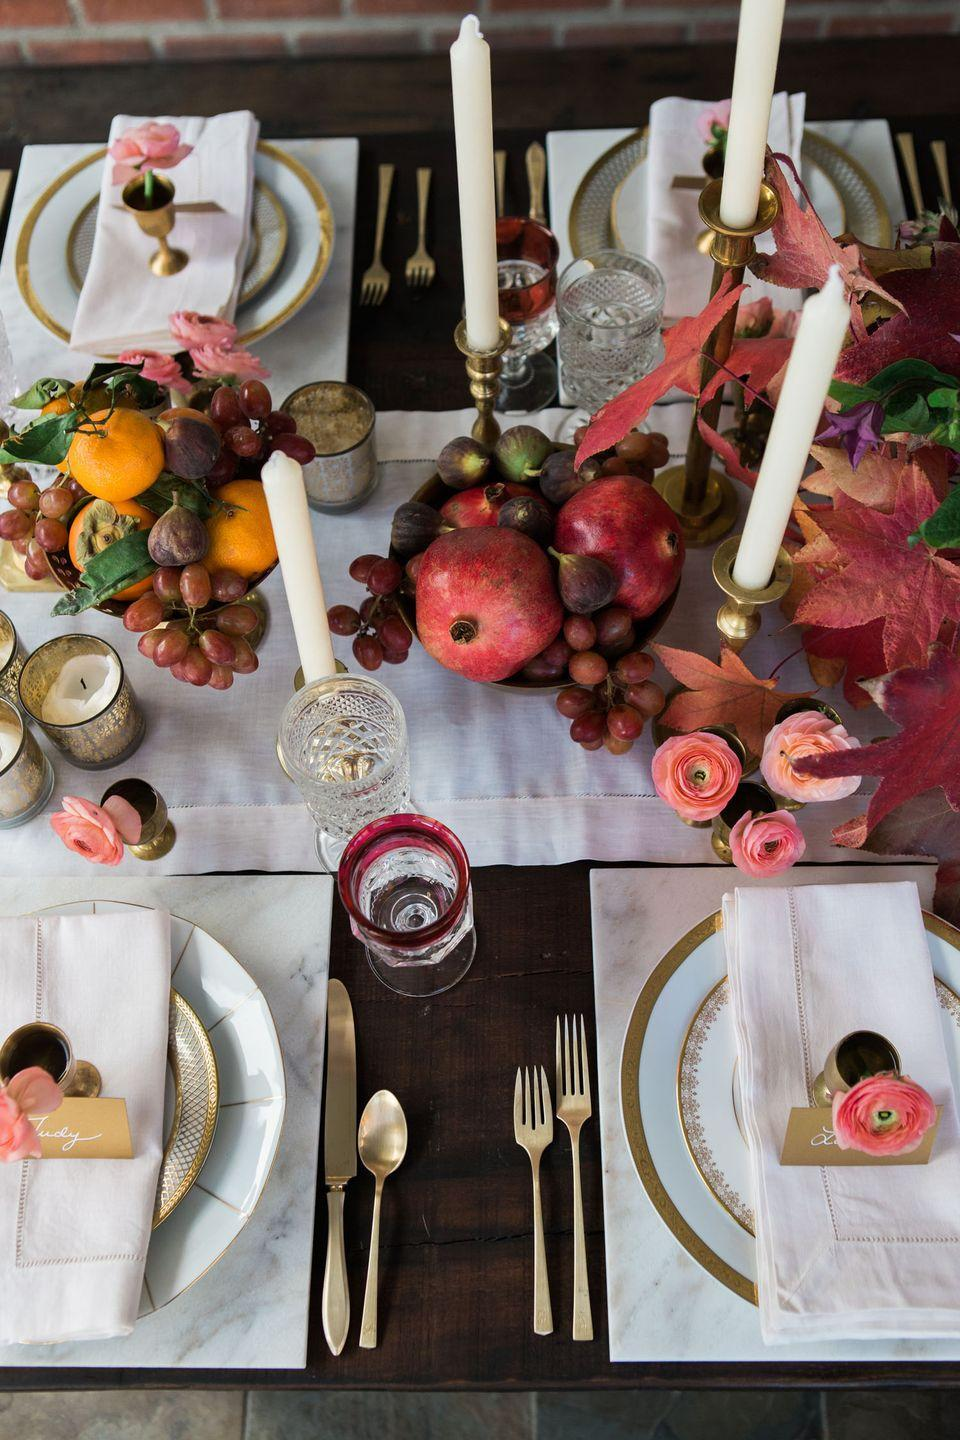 <p>This jewel-toned table incorporates burgundy, brass, and lots of fruit. Pro tip: This color looks gorg on top of a dark wood table.</p>